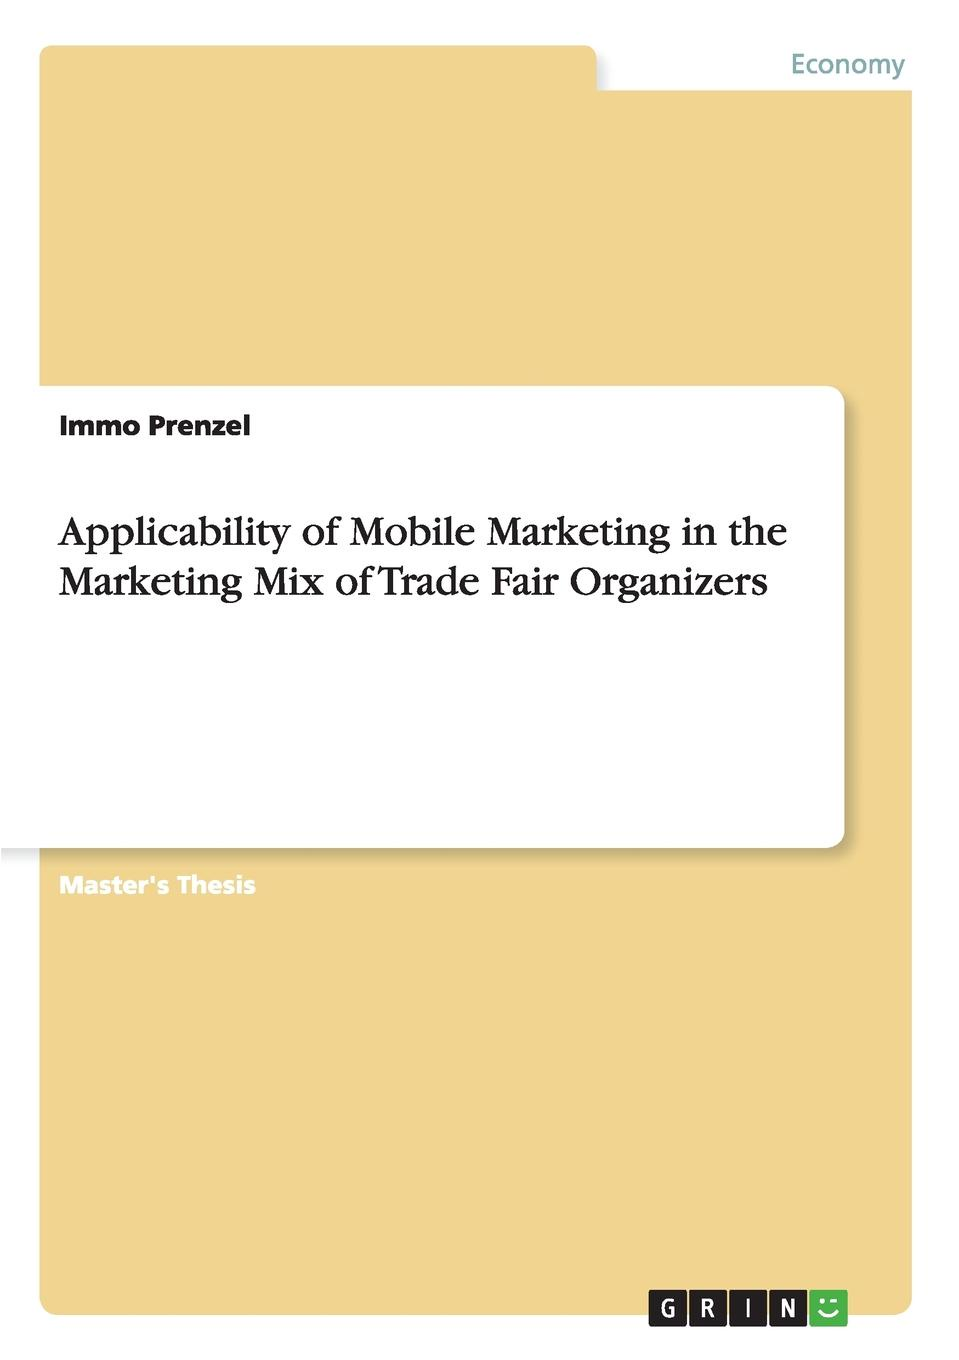 Immo Prenzel Applicability of Mobile Marketing in the Marketing Mix of Trade Fair Organizers